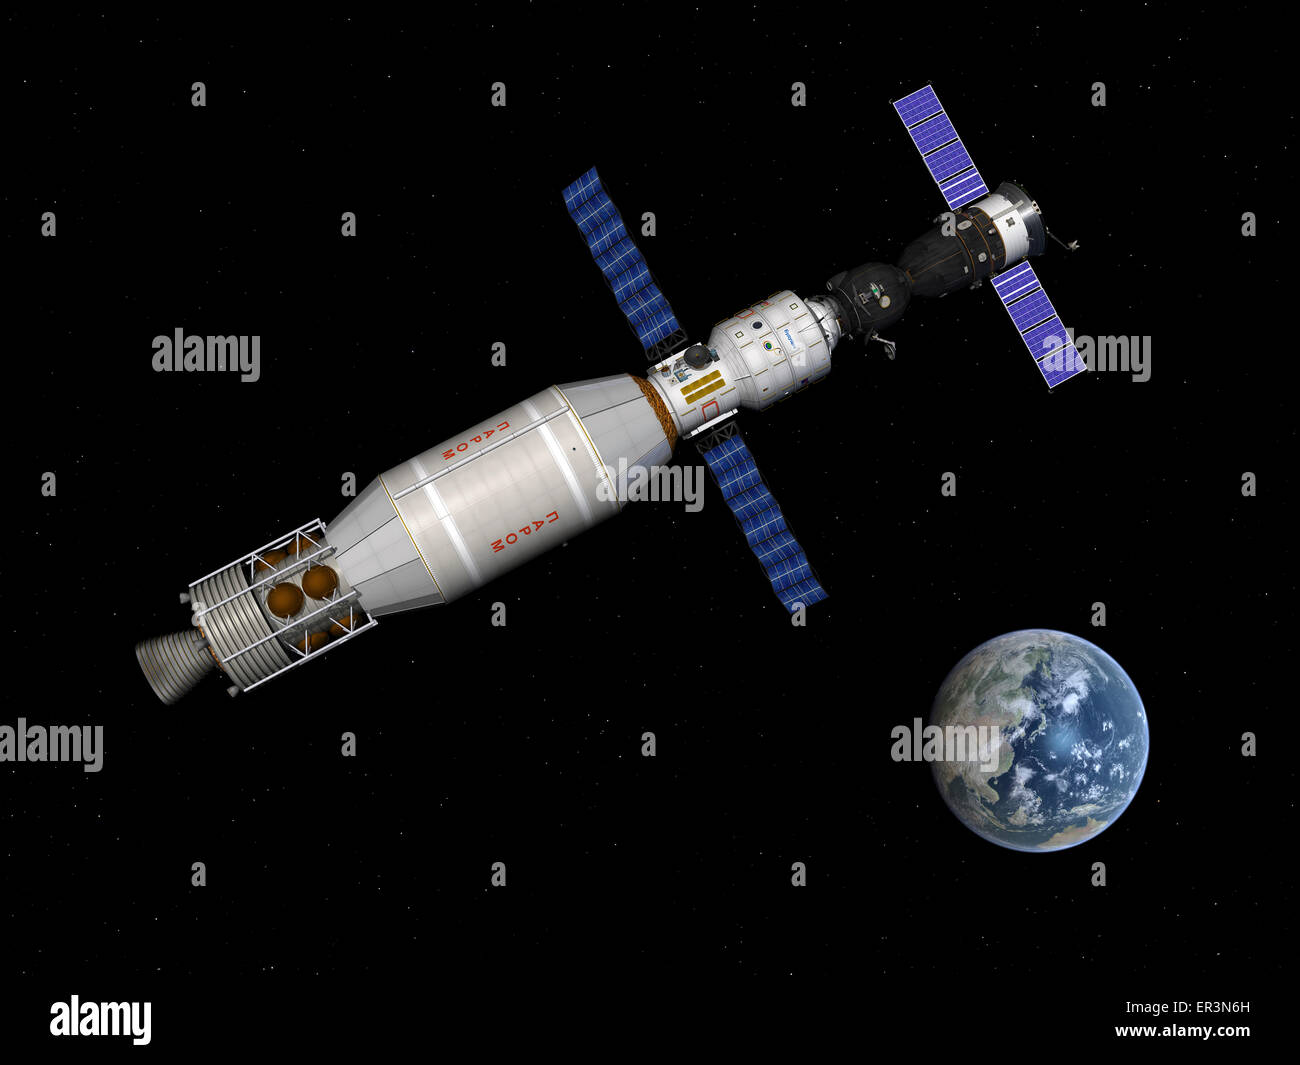 A manned Soyuz TMA-M spacecraft docked with a three-person extended stay module begins to leave Earth orbit with - Stock Image